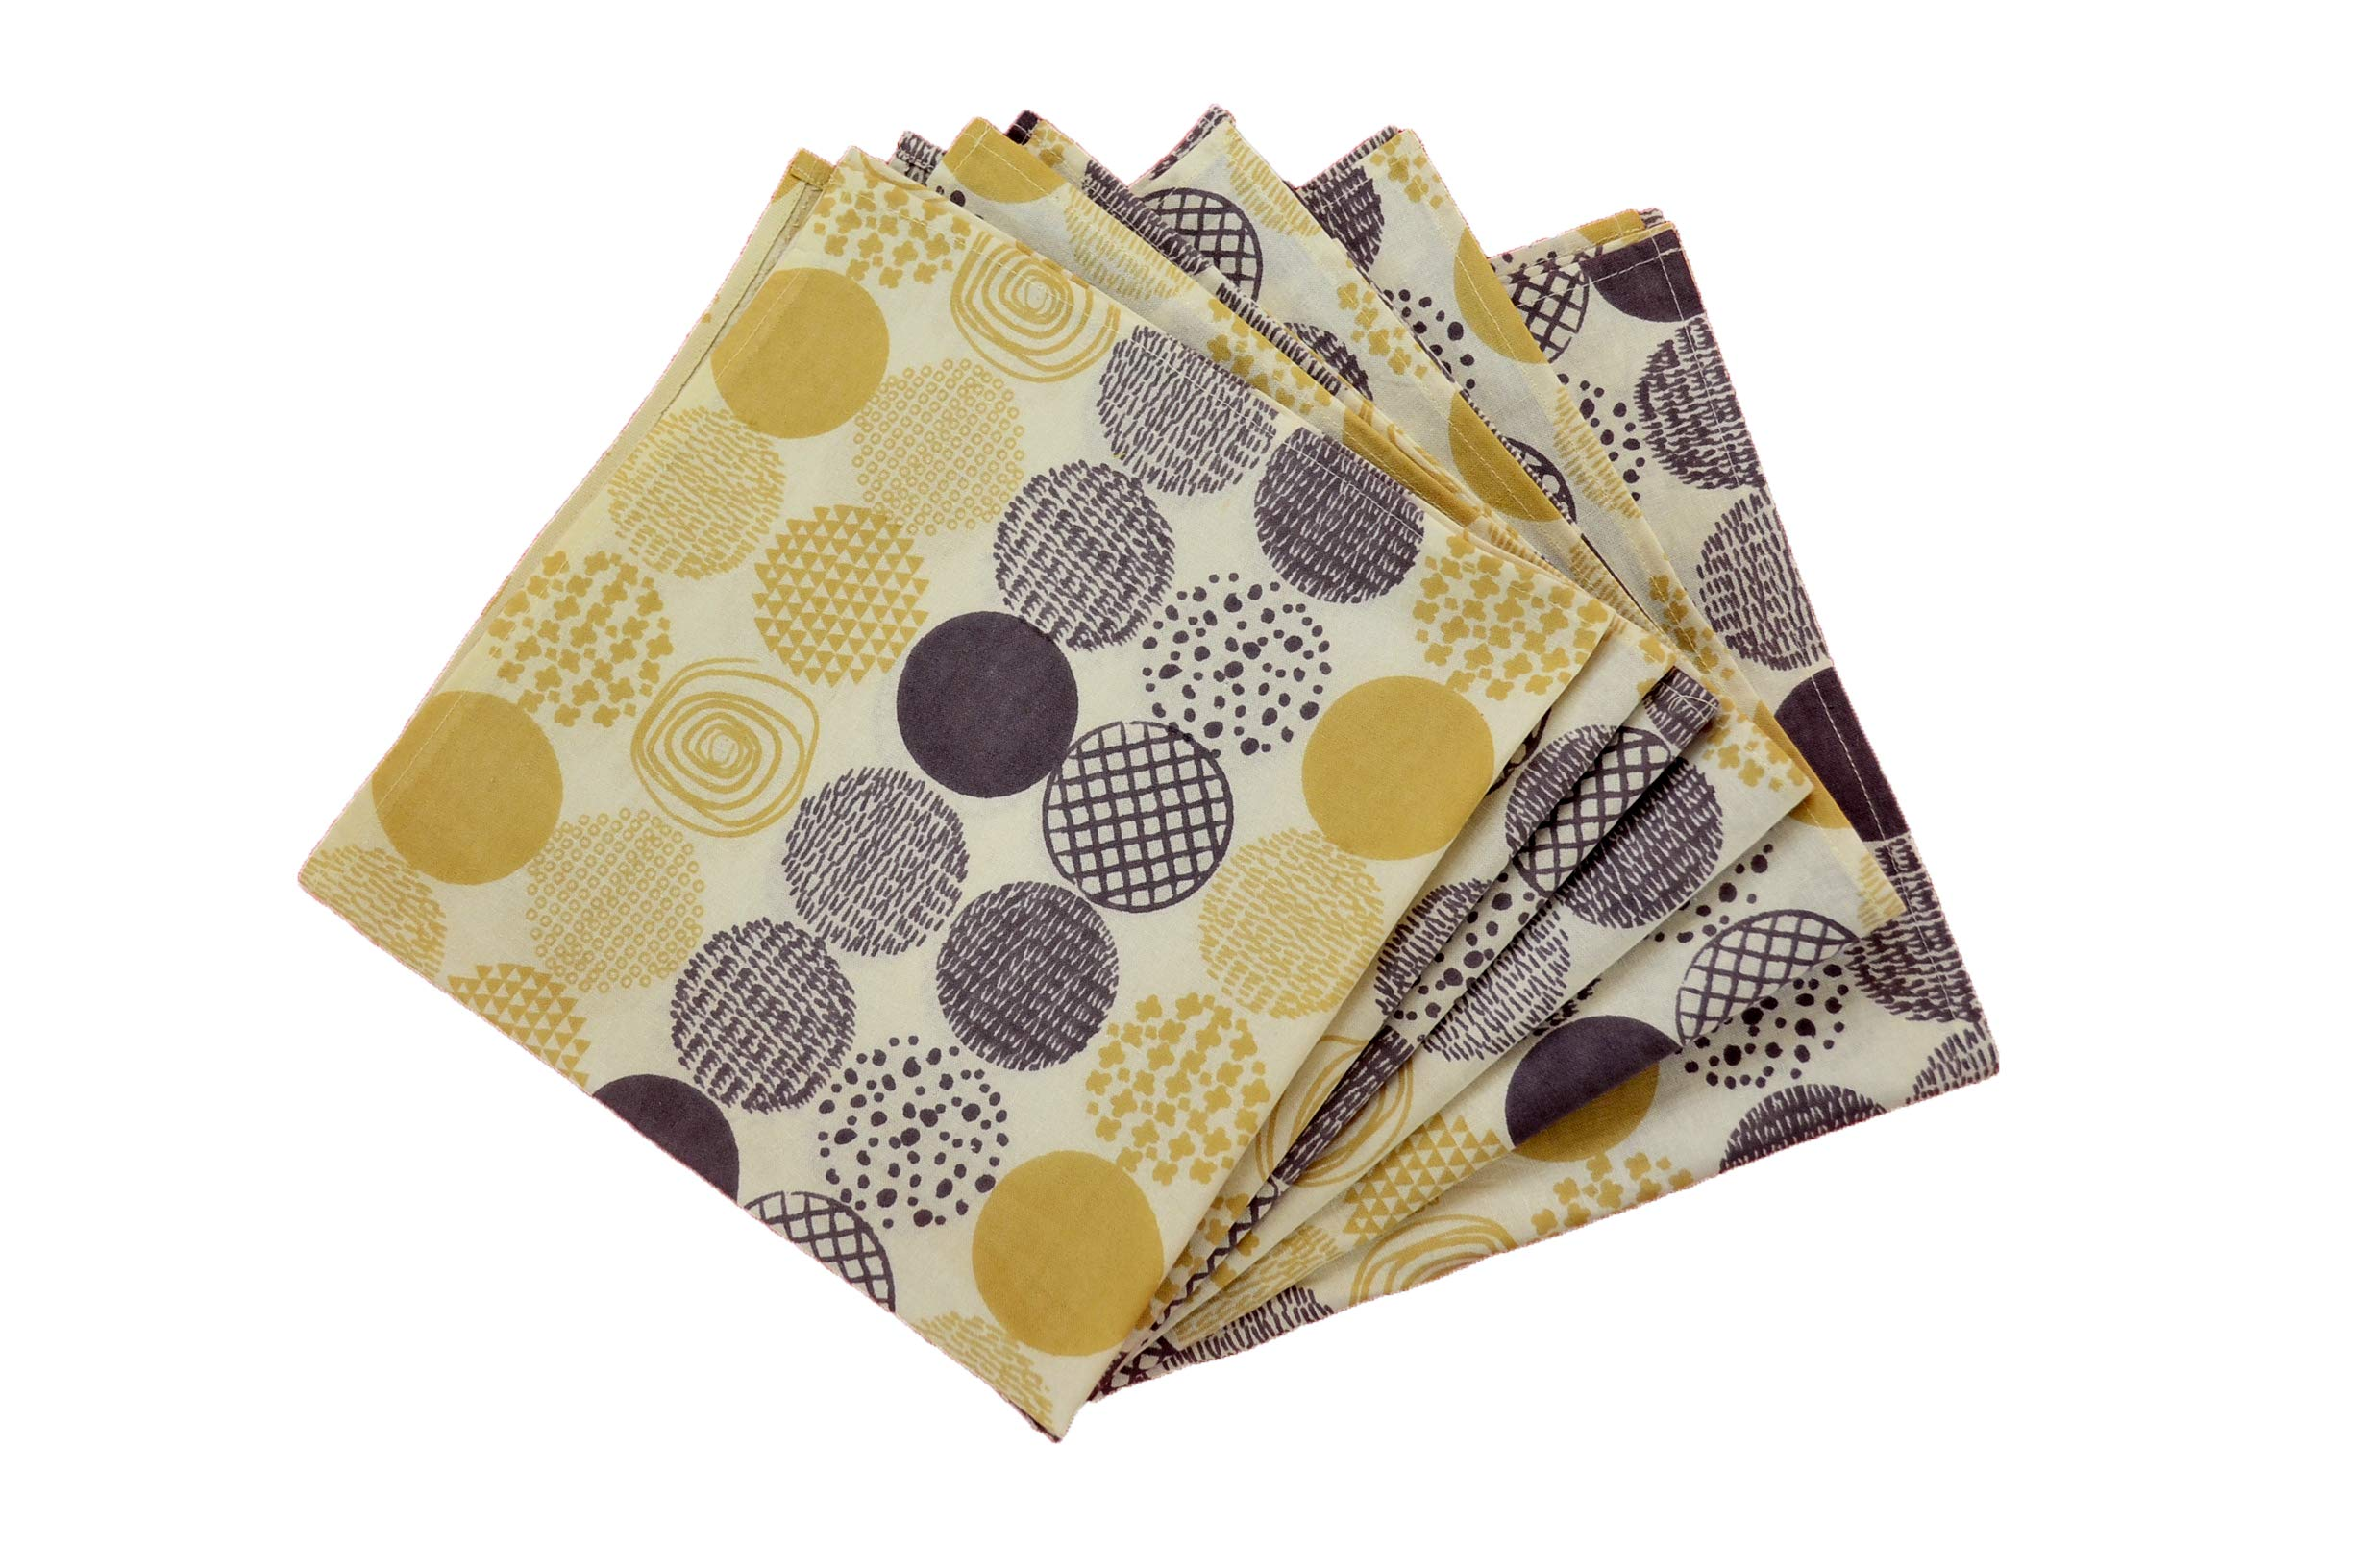 Jucos 100% Cotton Oversized Napkins, 20 X 20 inch Dinner Napkins Everyday Use -Set of 6, Printed Circular Design Beige & Brown